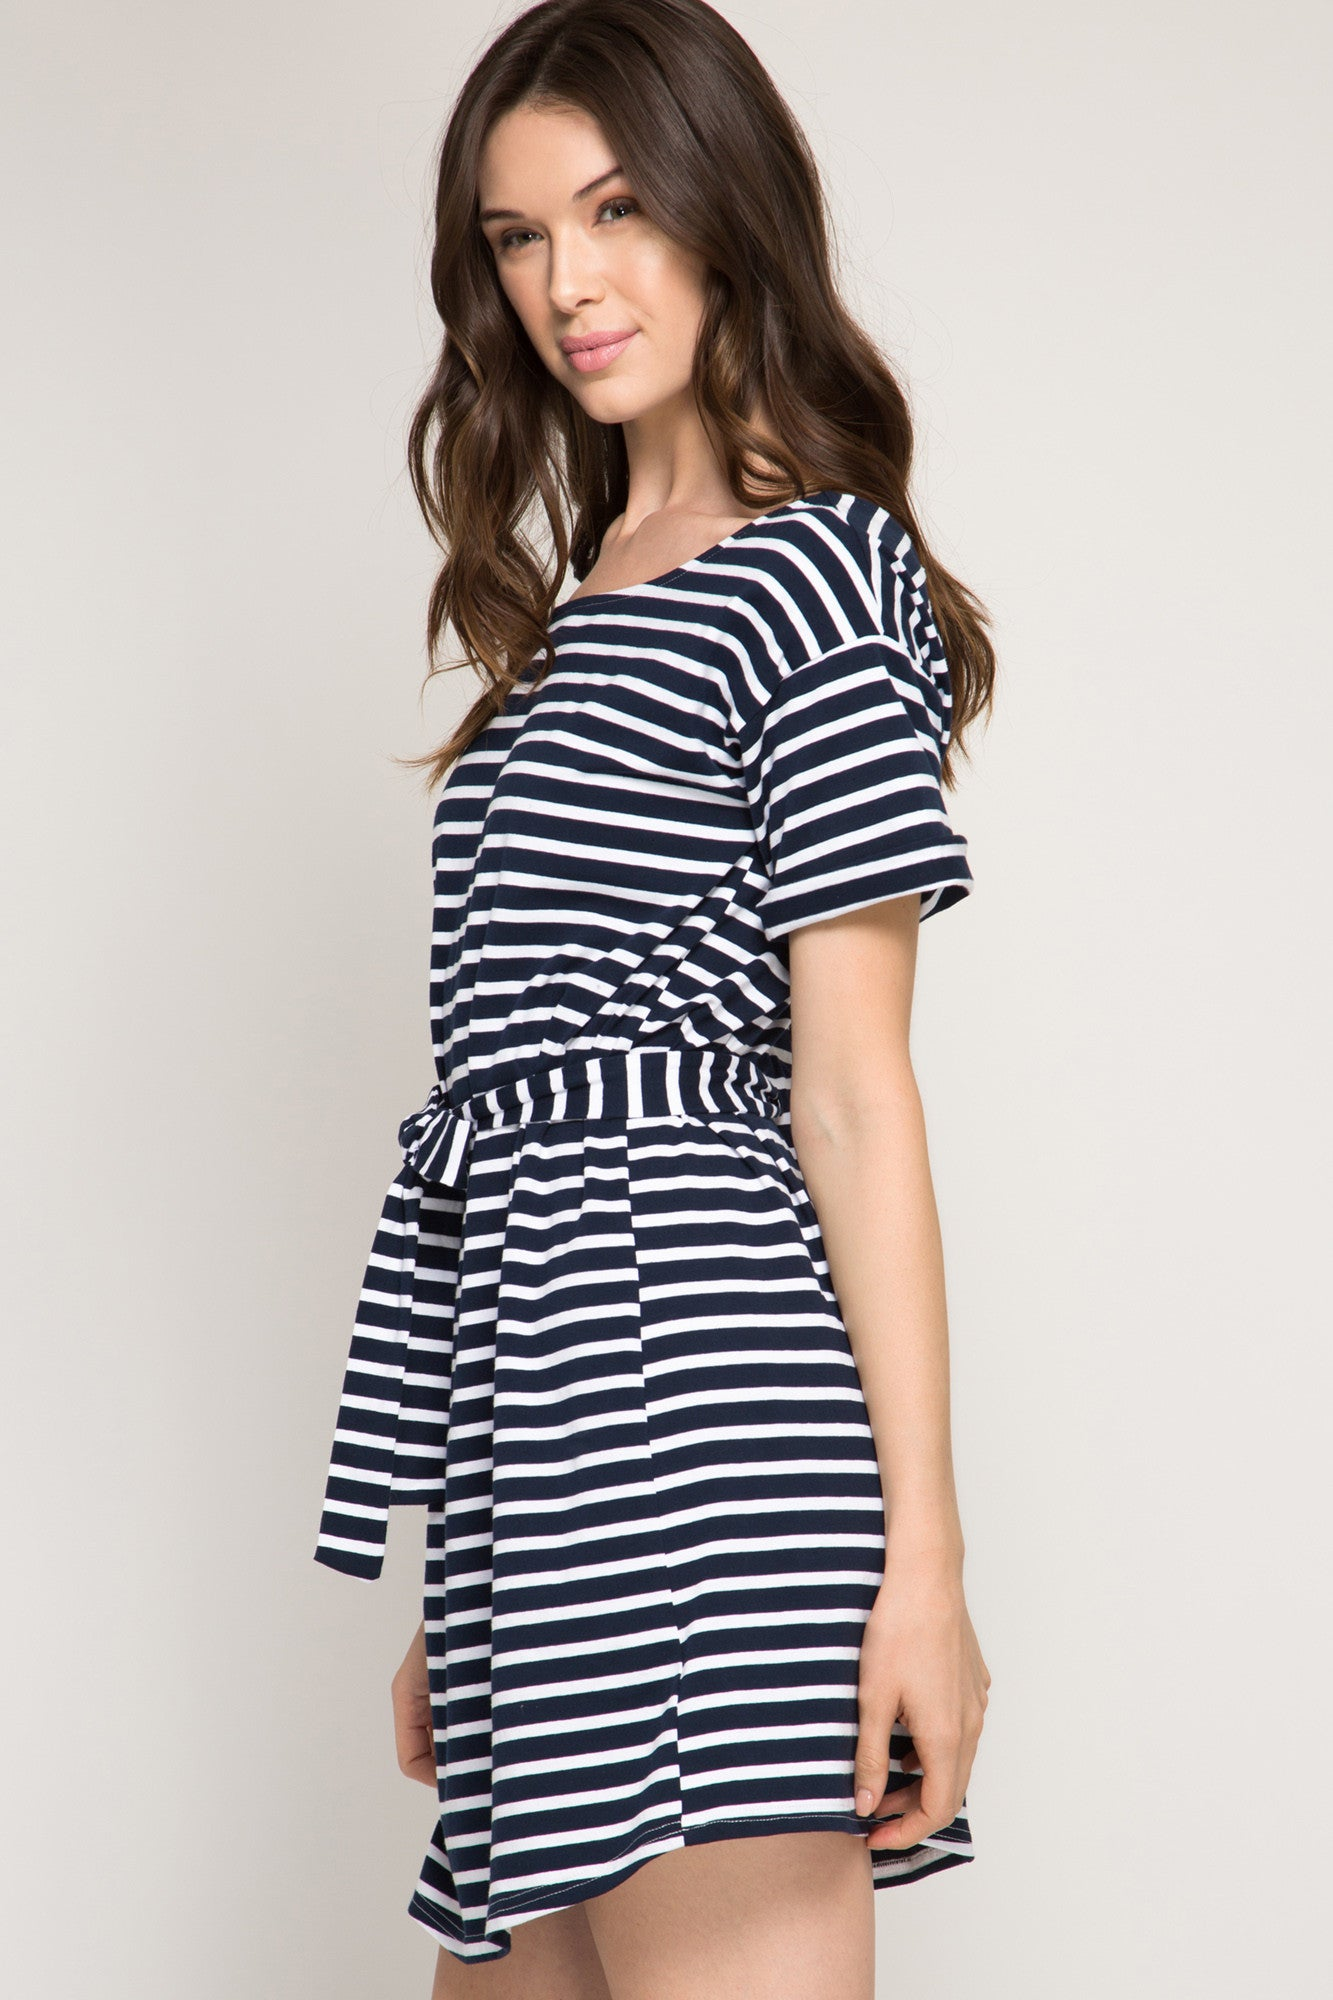 e2ca825511e Navy Blue and White Striped Open Back Dress with Bow Tie Waist Belt ...